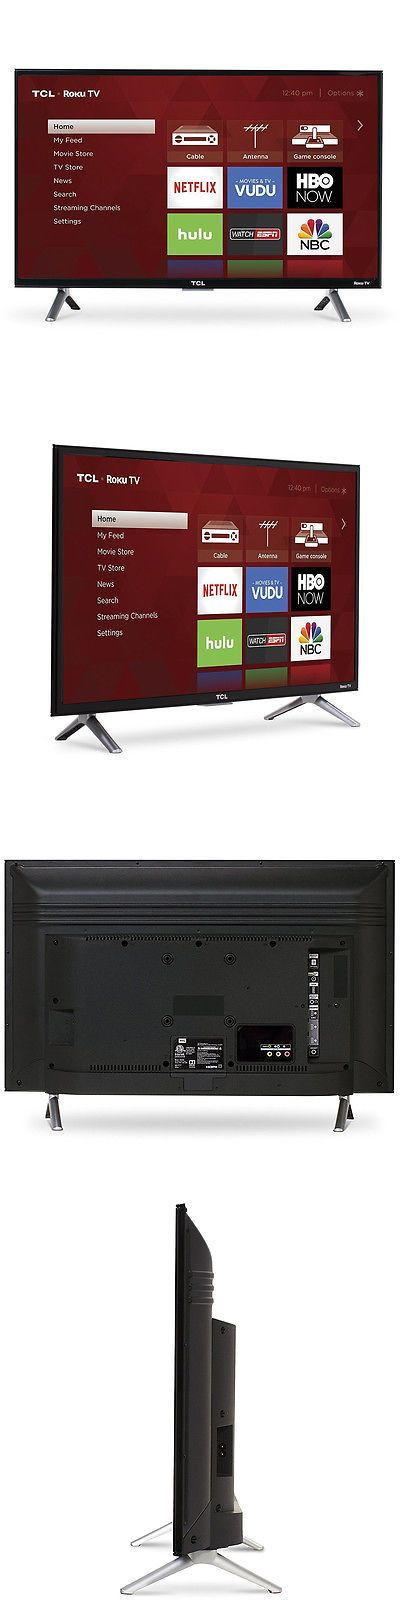 Televisions: Tcl 28-Inch Roku Smart Led Hdtv With 720P Resolution And Dual-Band Wifi In Black -> BUY IT NOW ONLY: $168.36 on eBay!